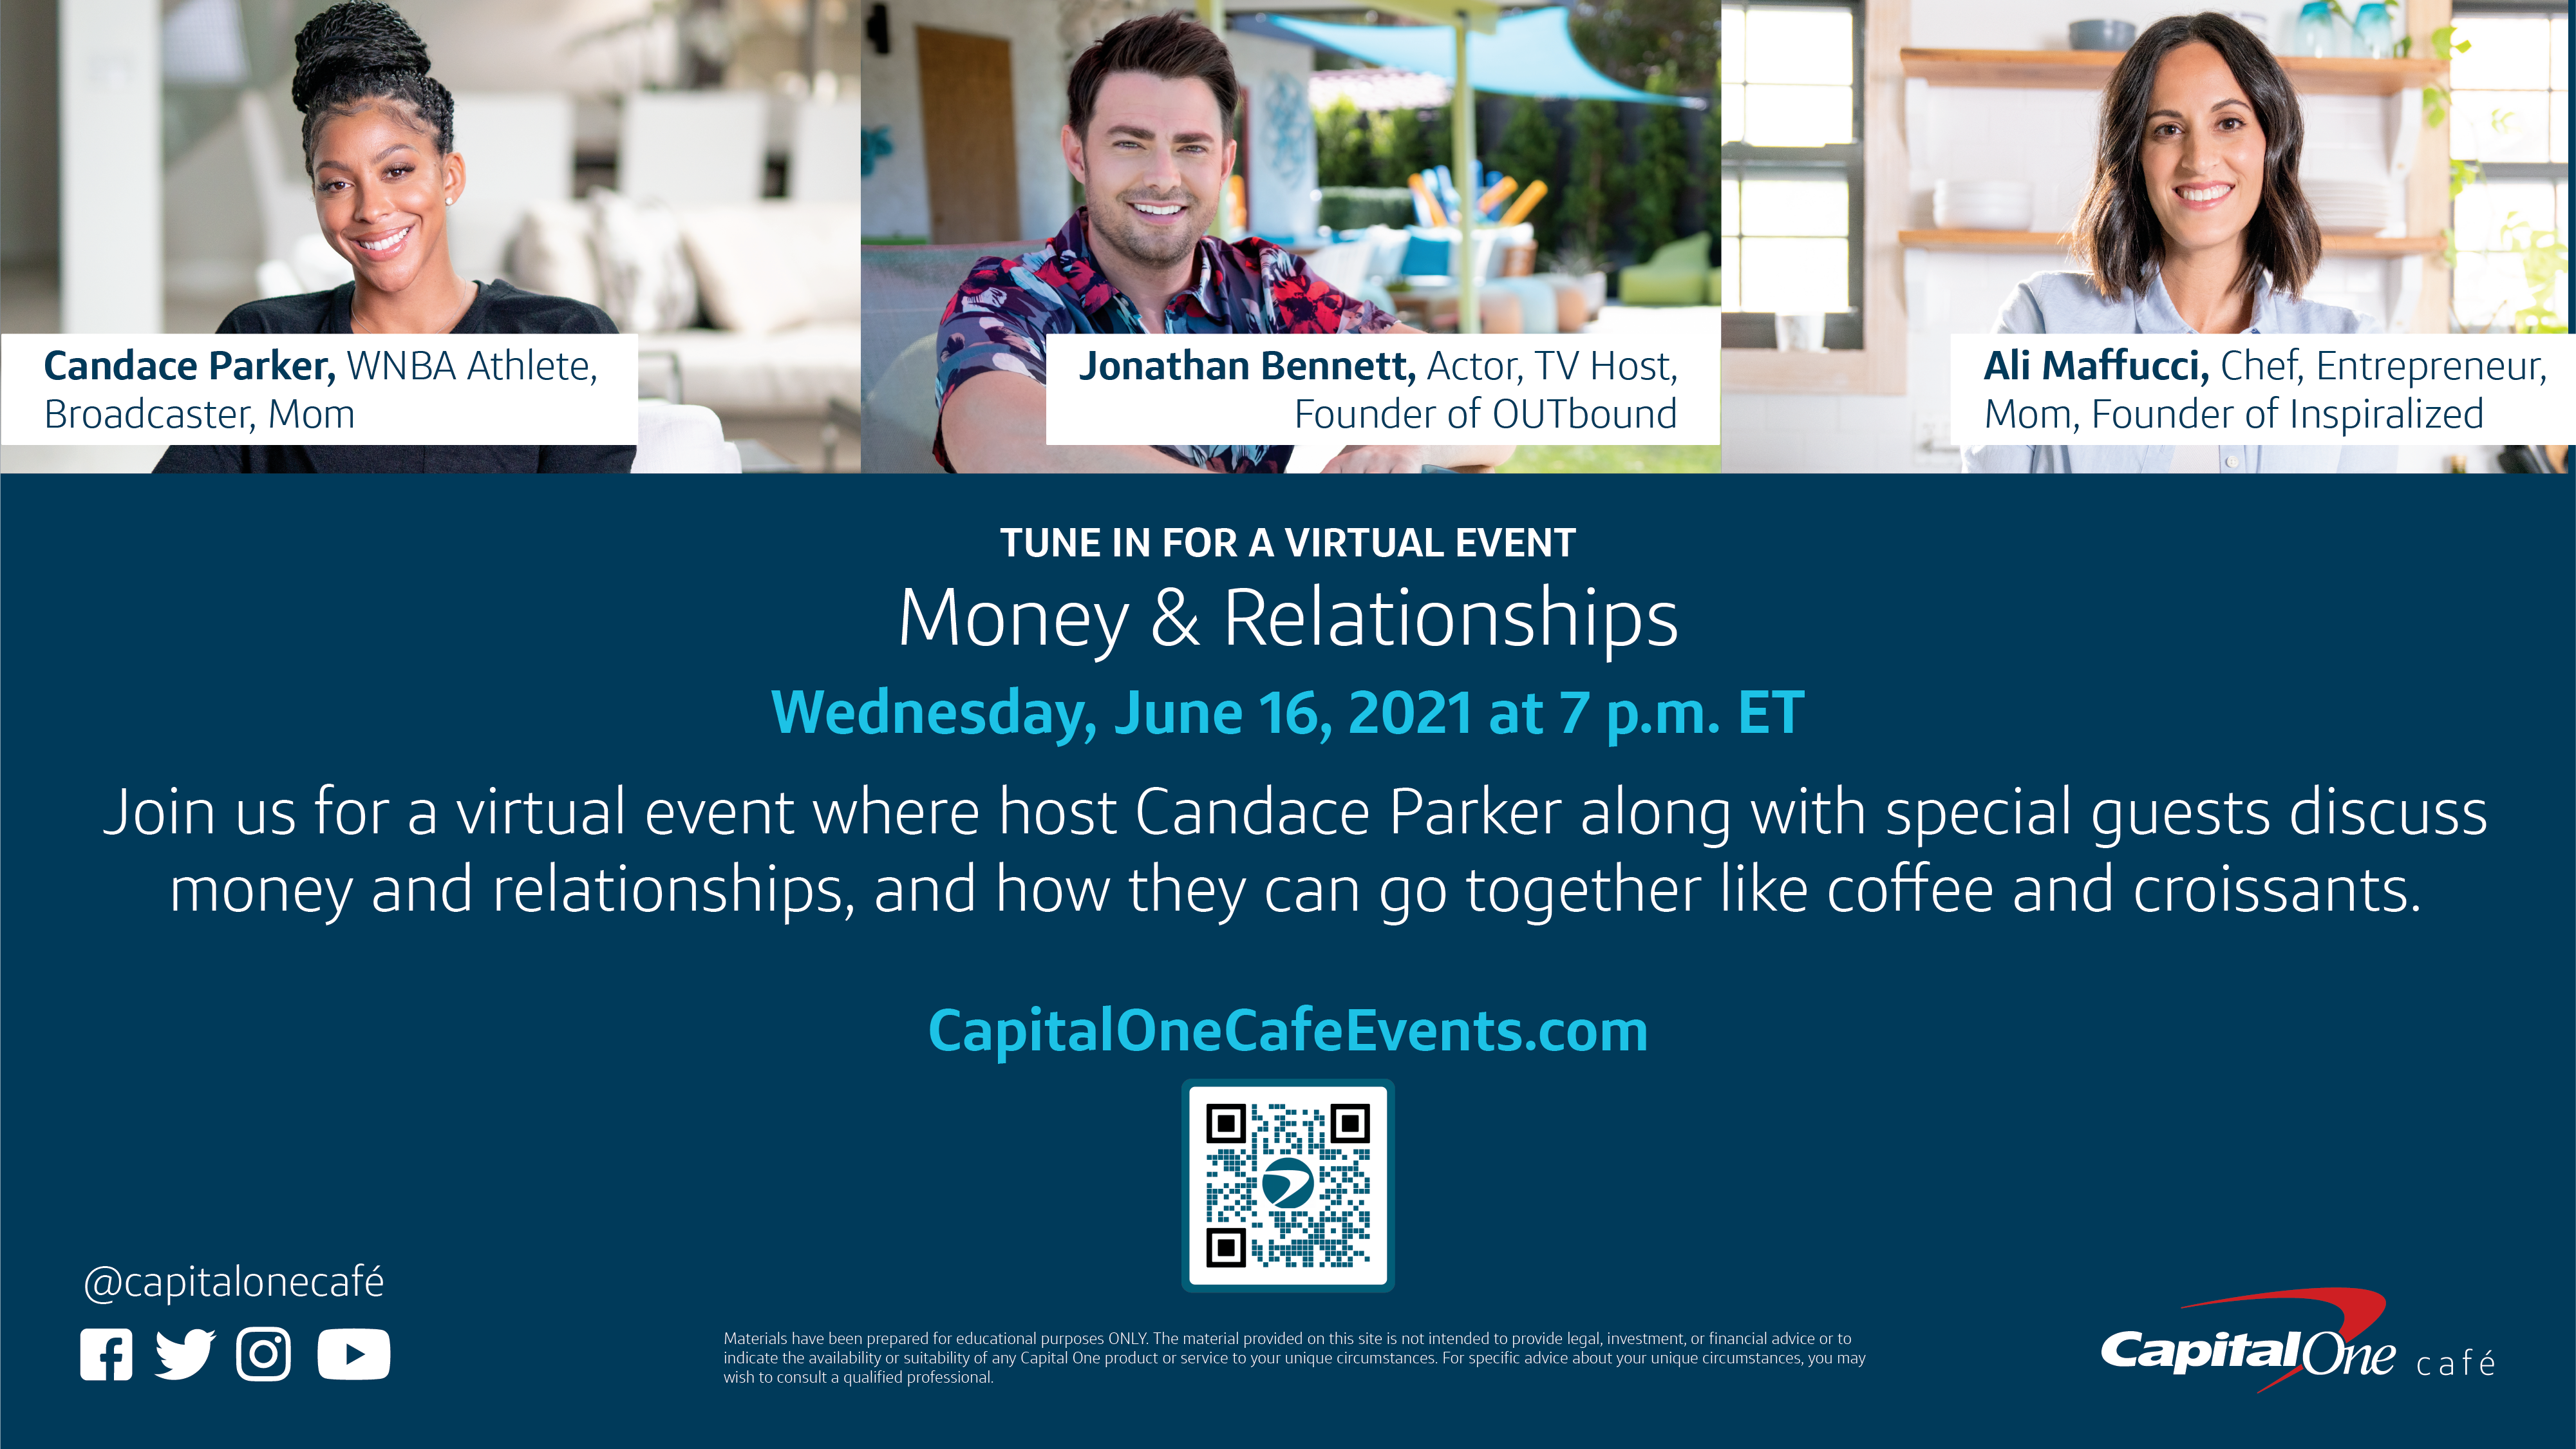 Money & Relationships | A Virtual Event by Capital One Cafés